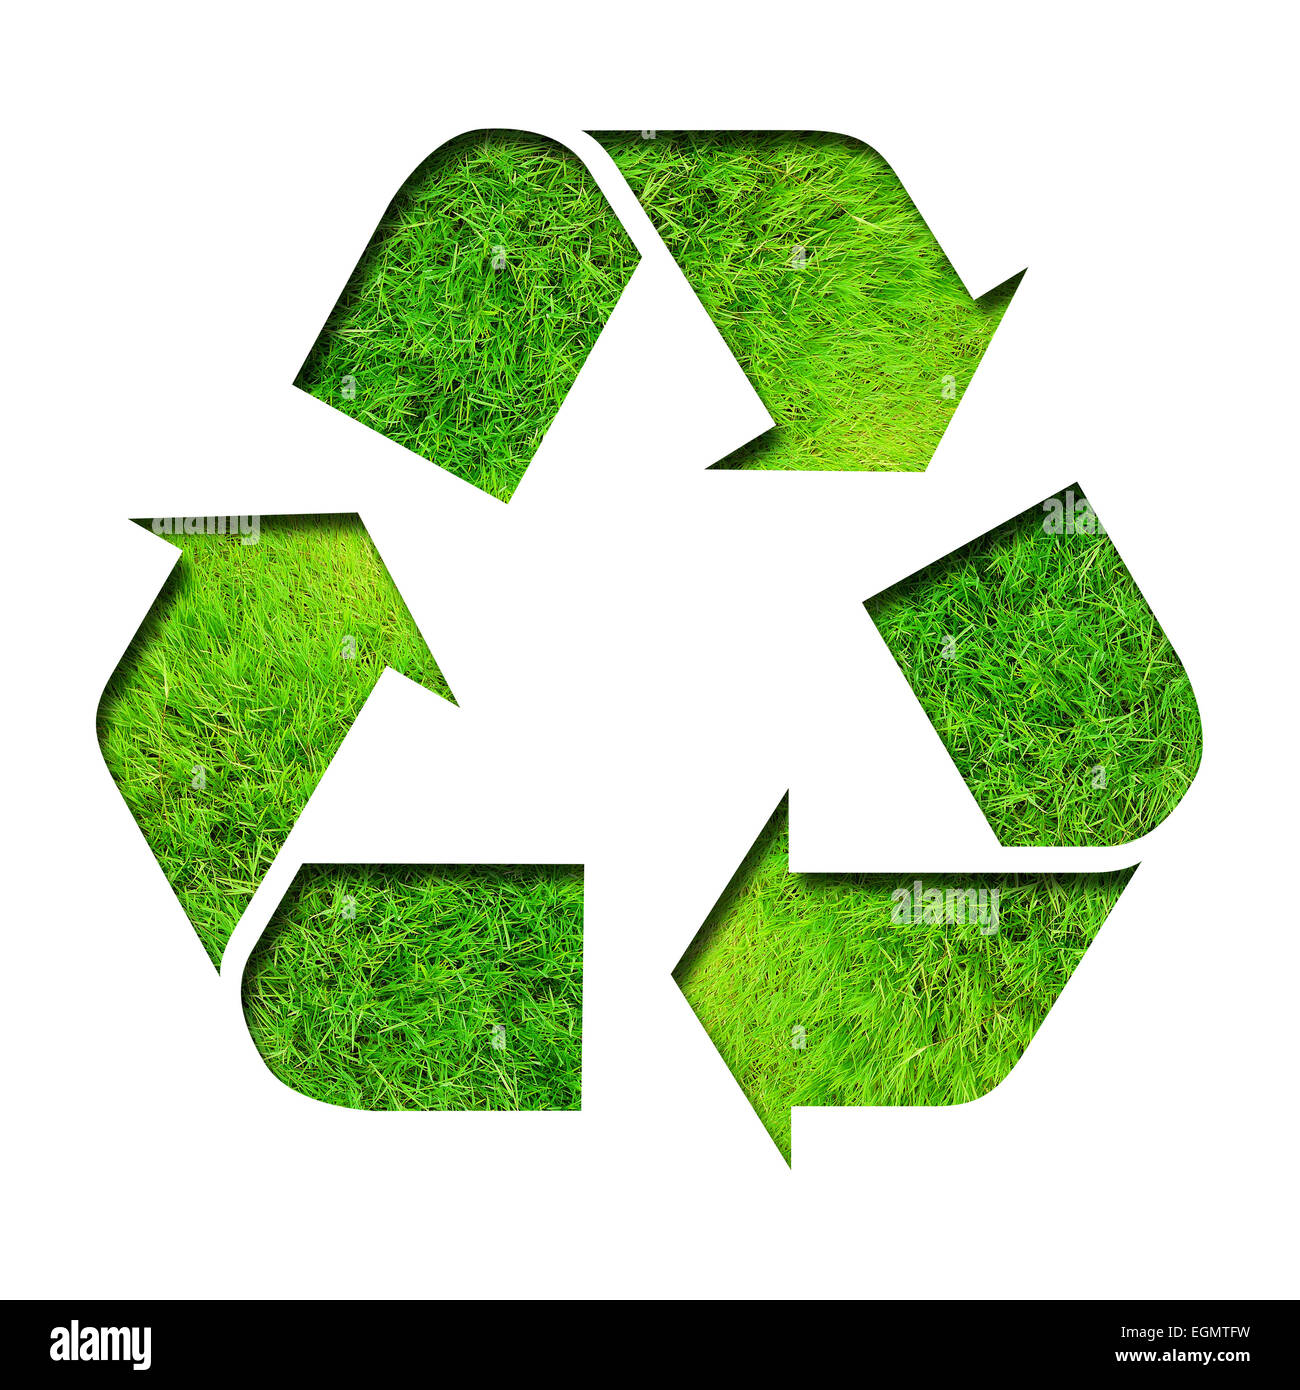 Recycle three arrows sign upon a green grass background, isolated on white - Stock Image